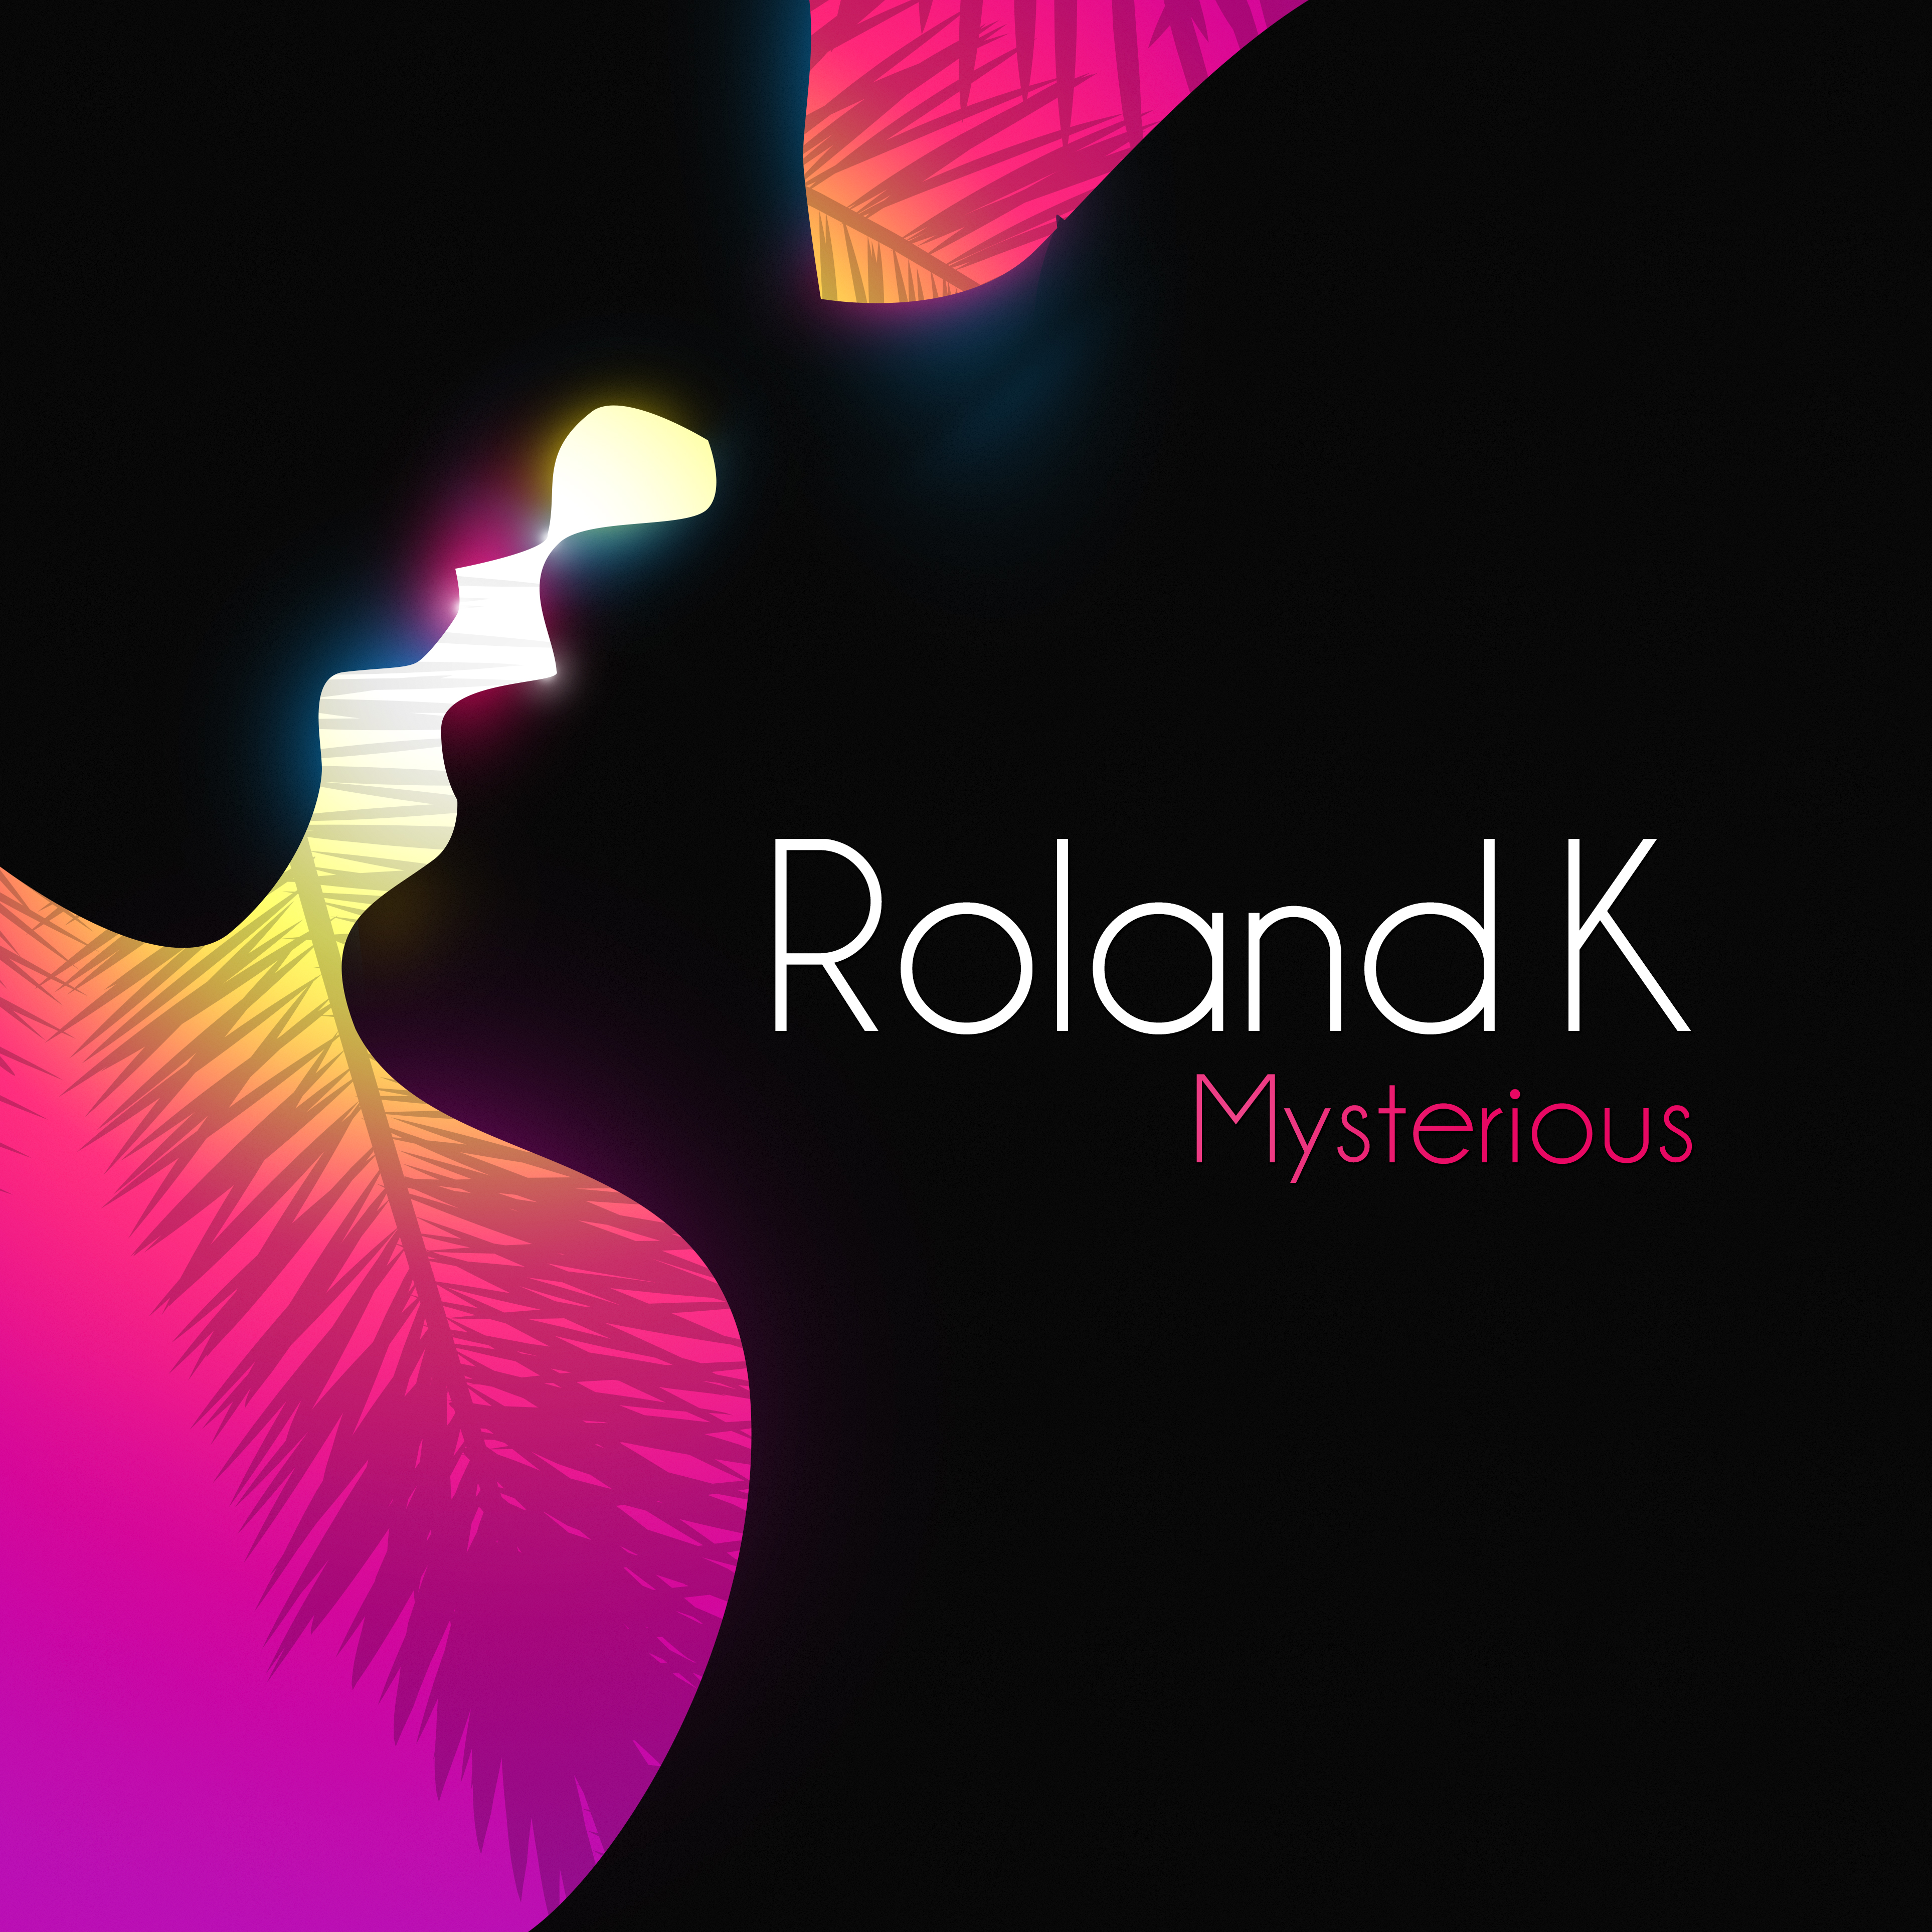 Roland K - Mysterious